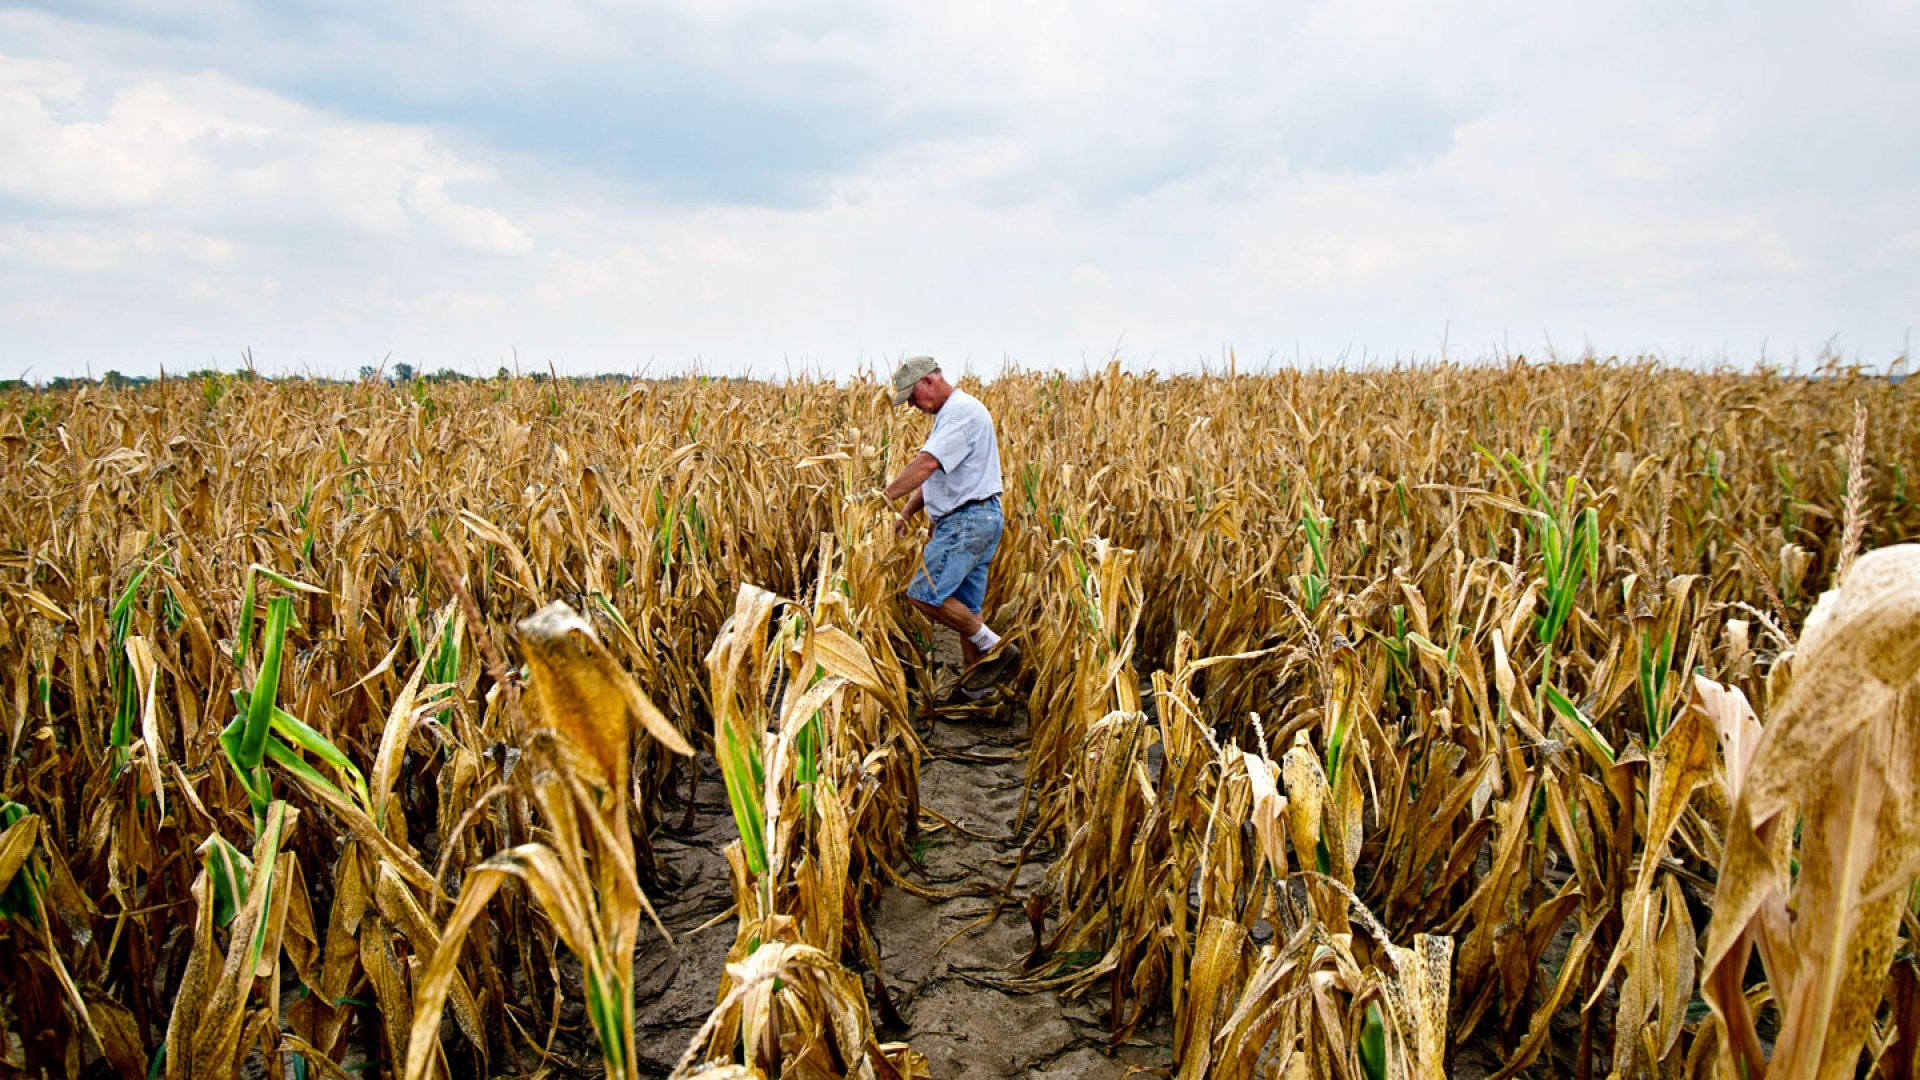 Small Businesses Bracing For Drought's Effects